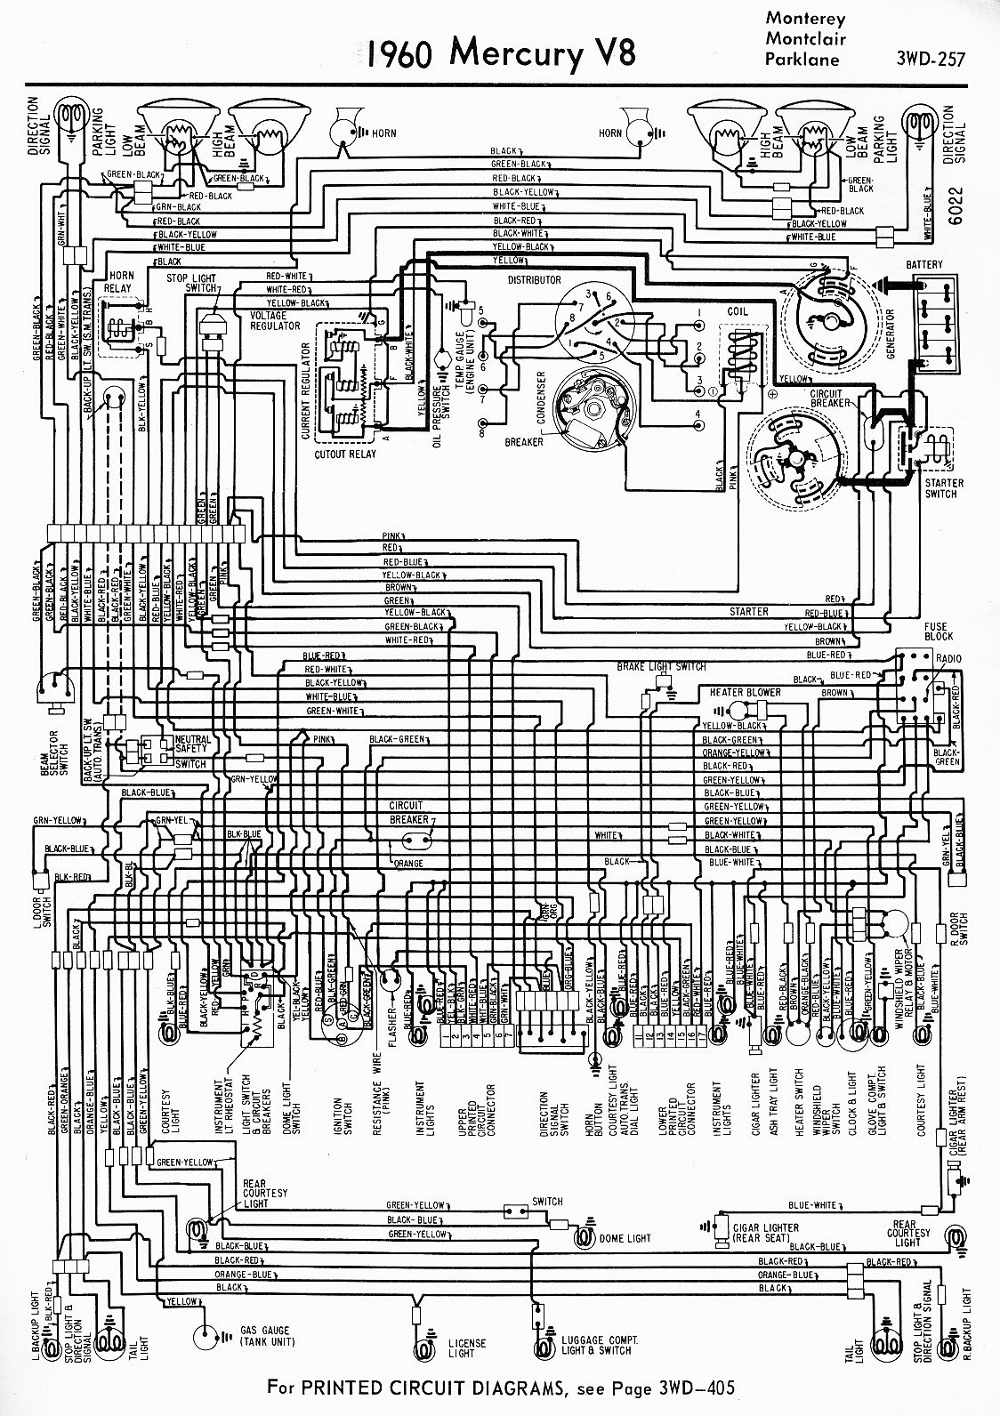 hight resolution of 2005 mercury monterey wiring diagram wiring diagram tags 2005 mercury monterey engine diagram